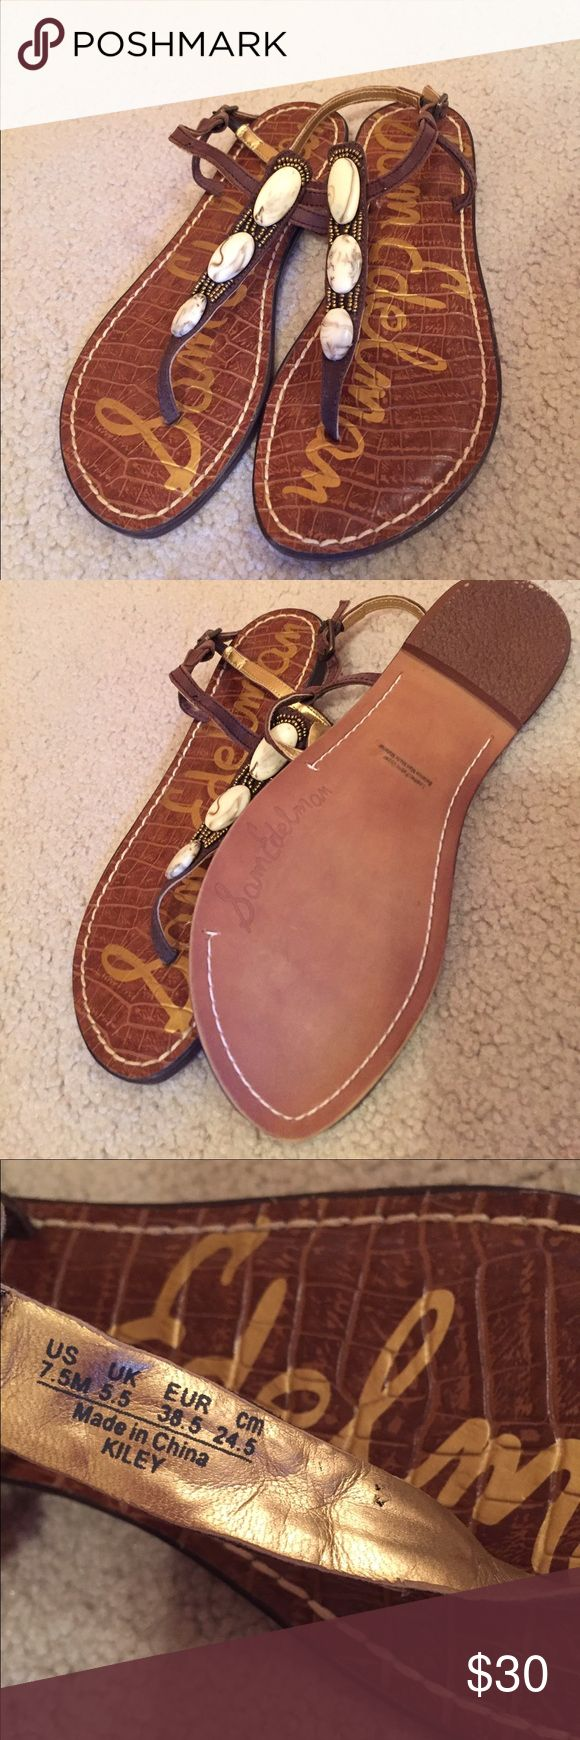 Sam Edelman Gigi sandal Worn once! Like new condition! The straps feature stones and beading, giving these sandals a feminine boho look. They are a little big for me. Sam Edelman Shoes Sandals